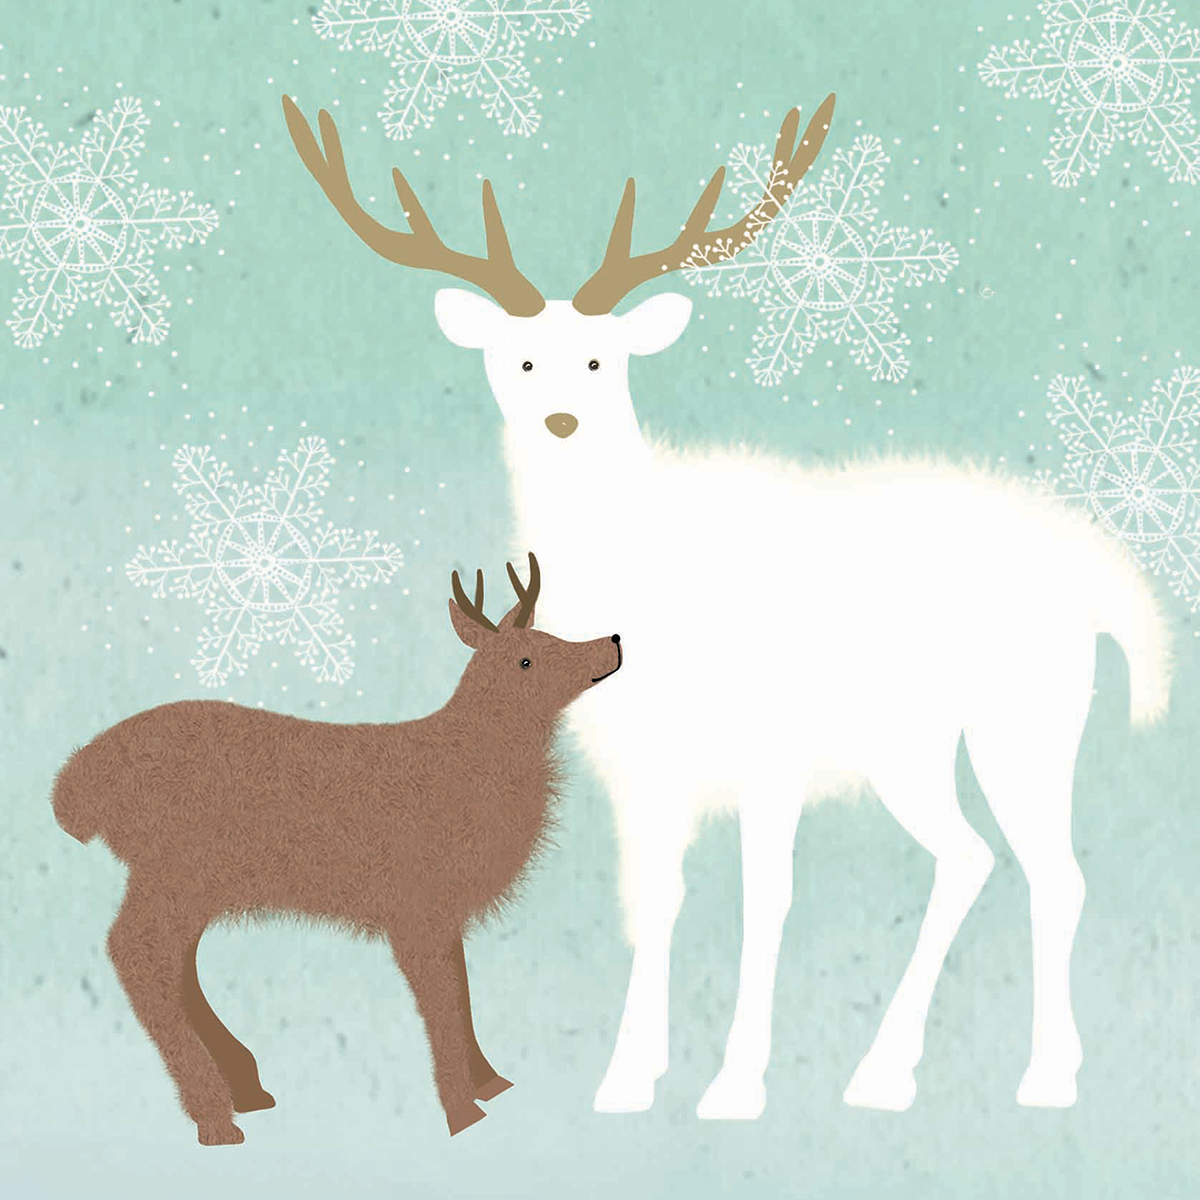 Pack of 10 140mm x 140mm WWF Deer Christmas cards with envelopes ...